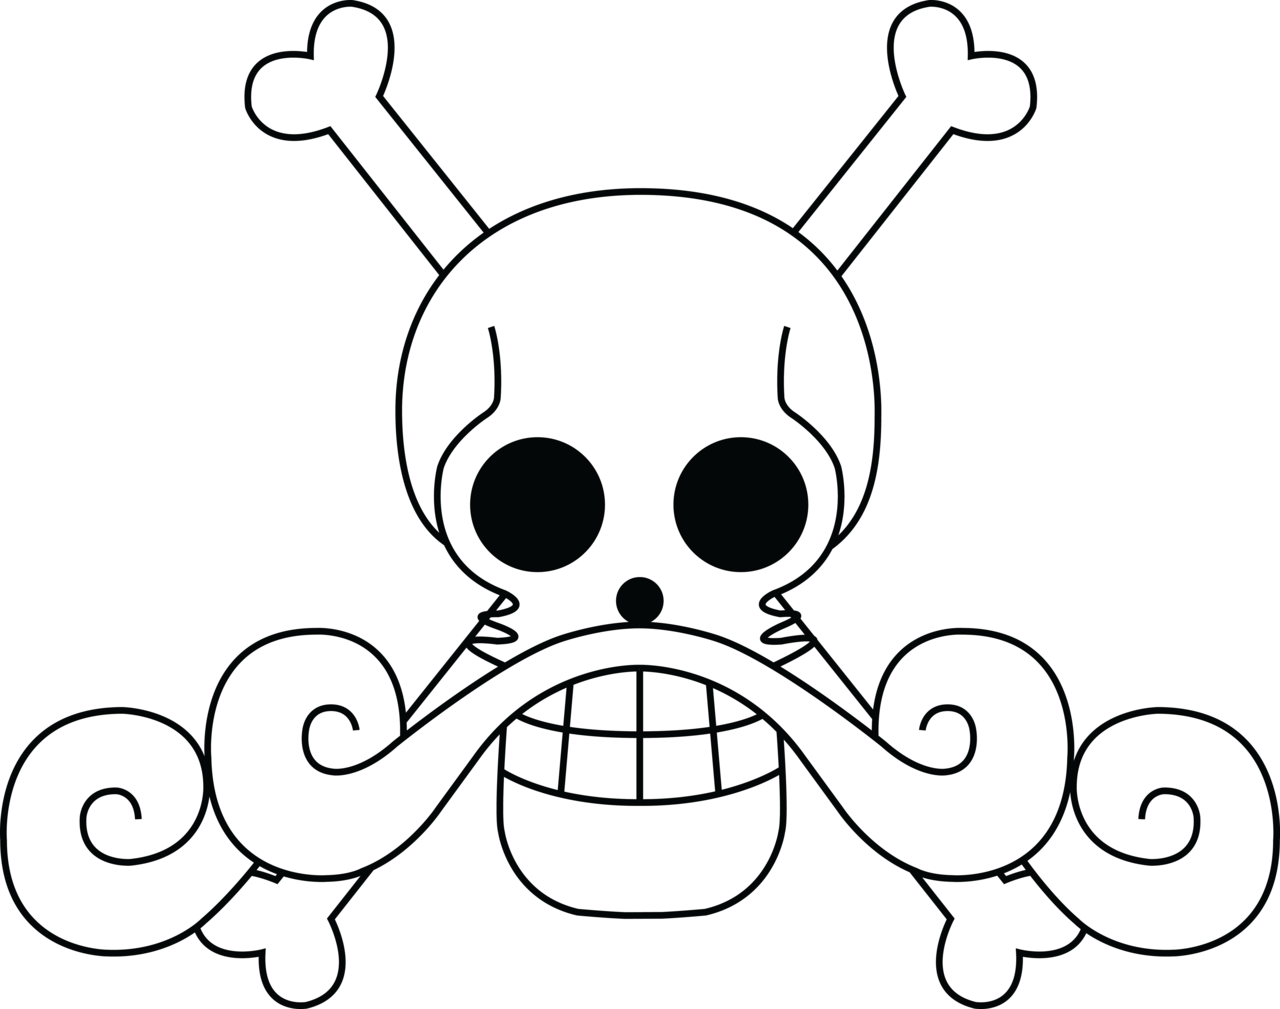 Drawing pirates pirate flag. Roger by alterax on